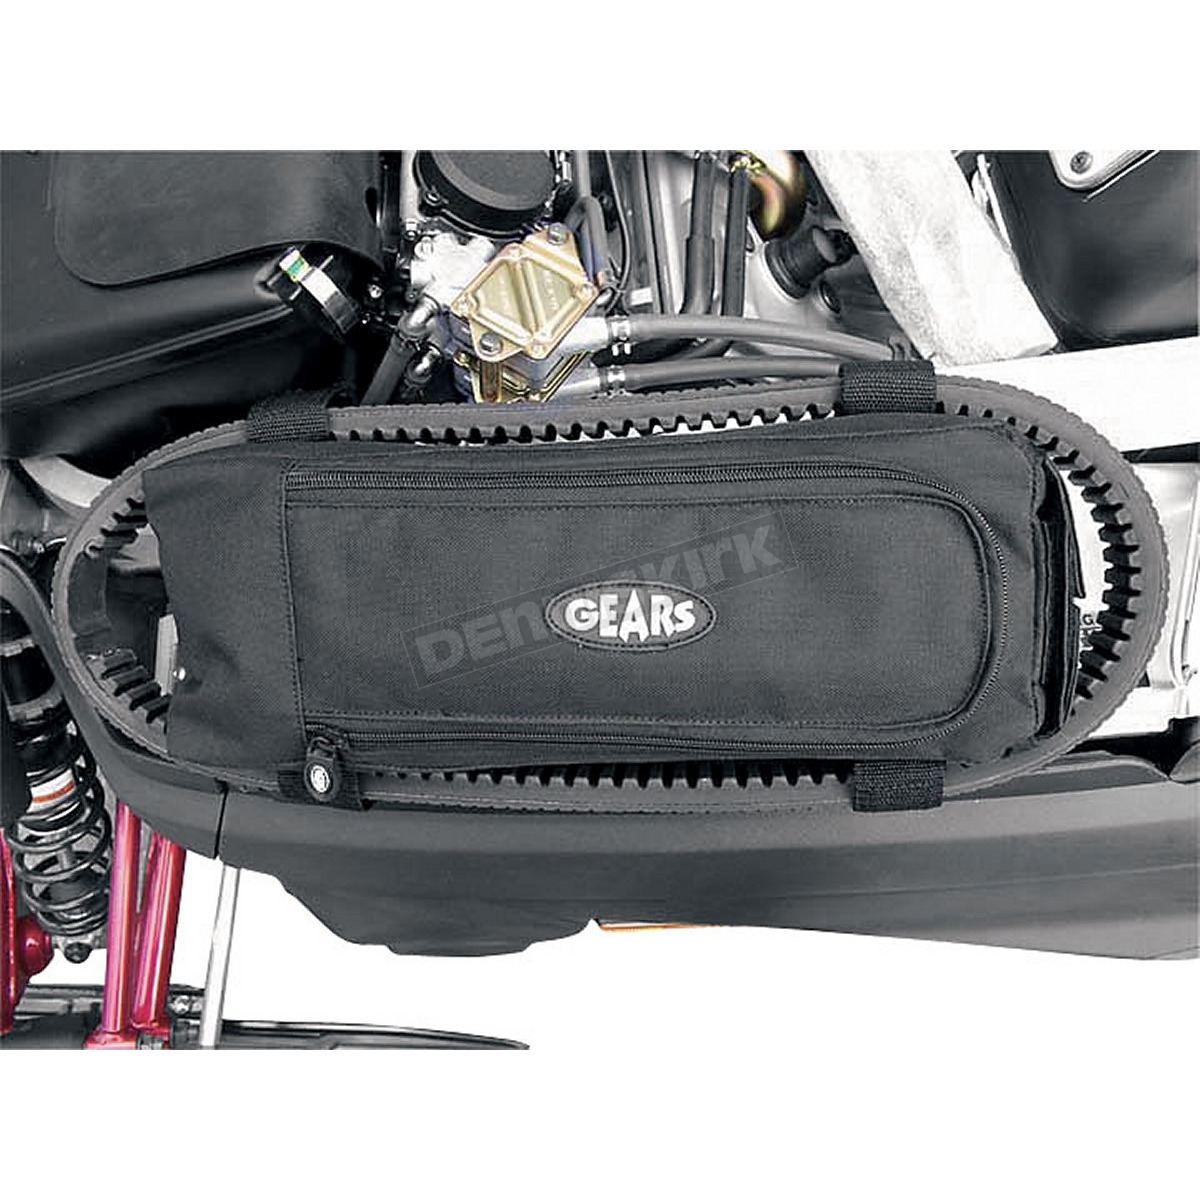 Clutch Cover Tool Bag 300159 1